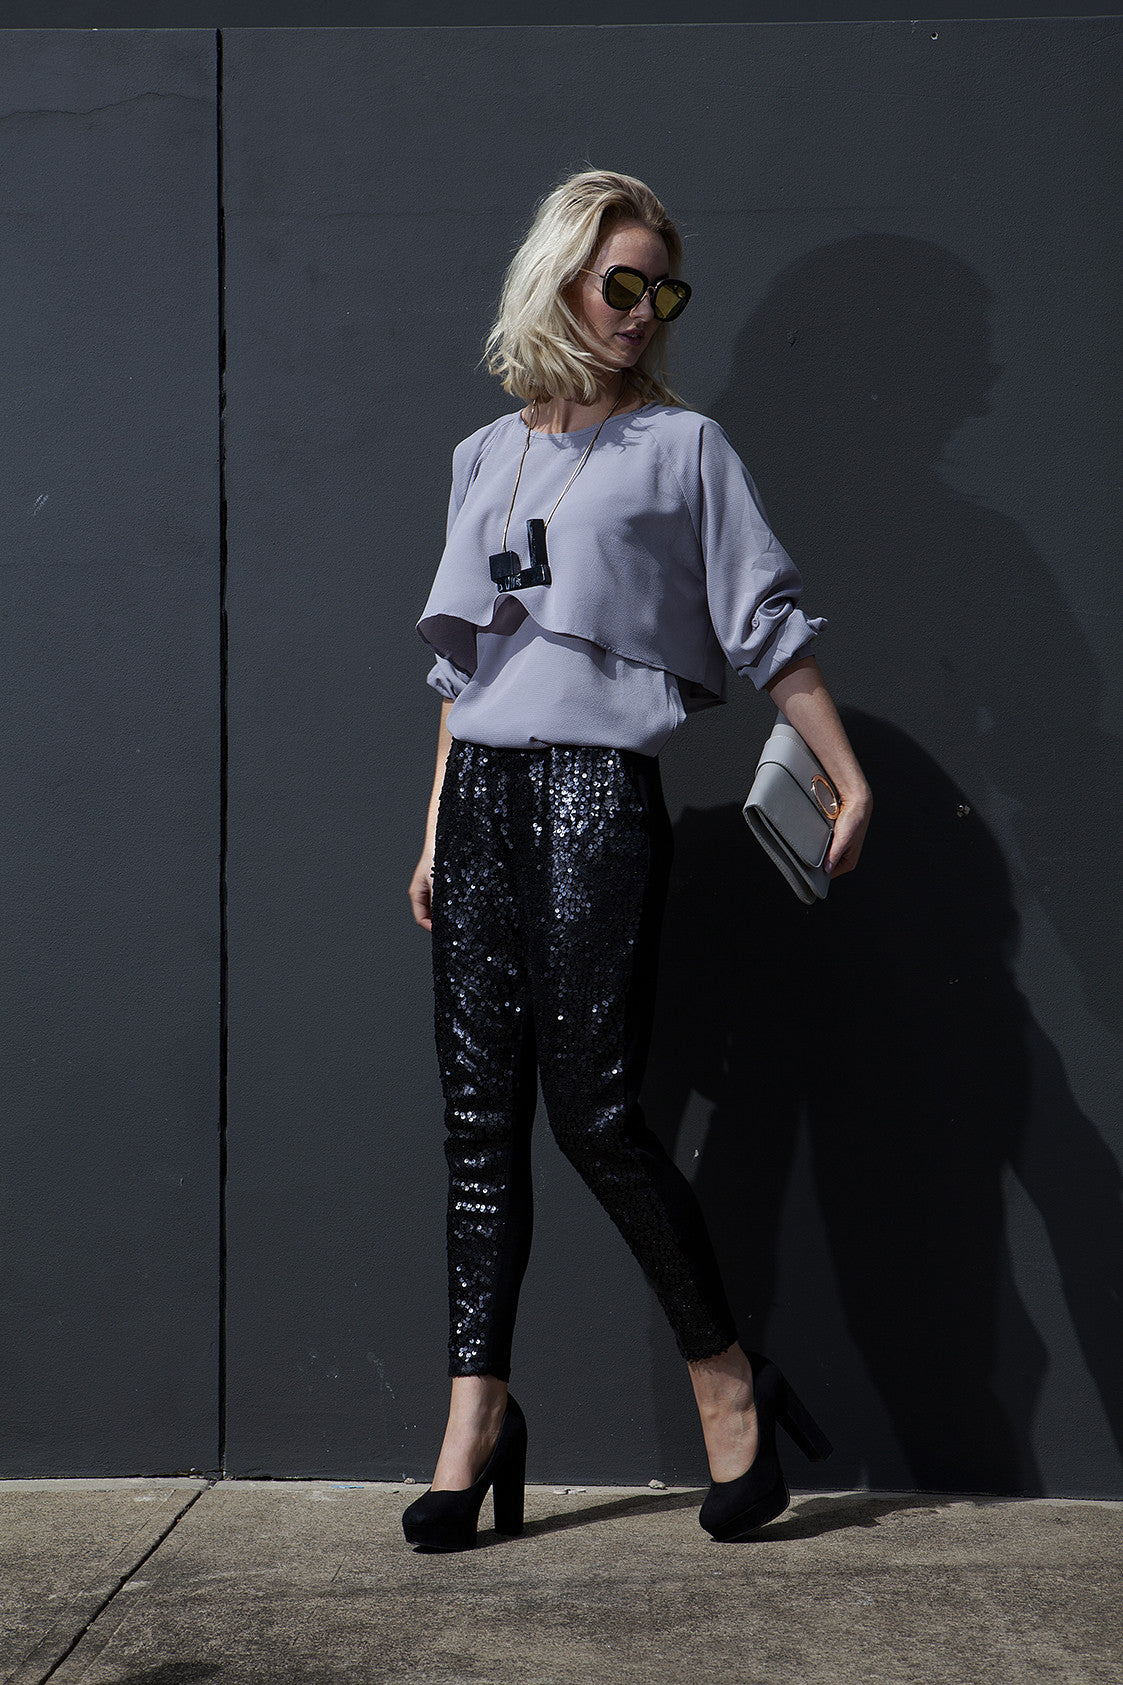 POPPY SEQUIN PANTS - WILL BE MADE TO ORDER